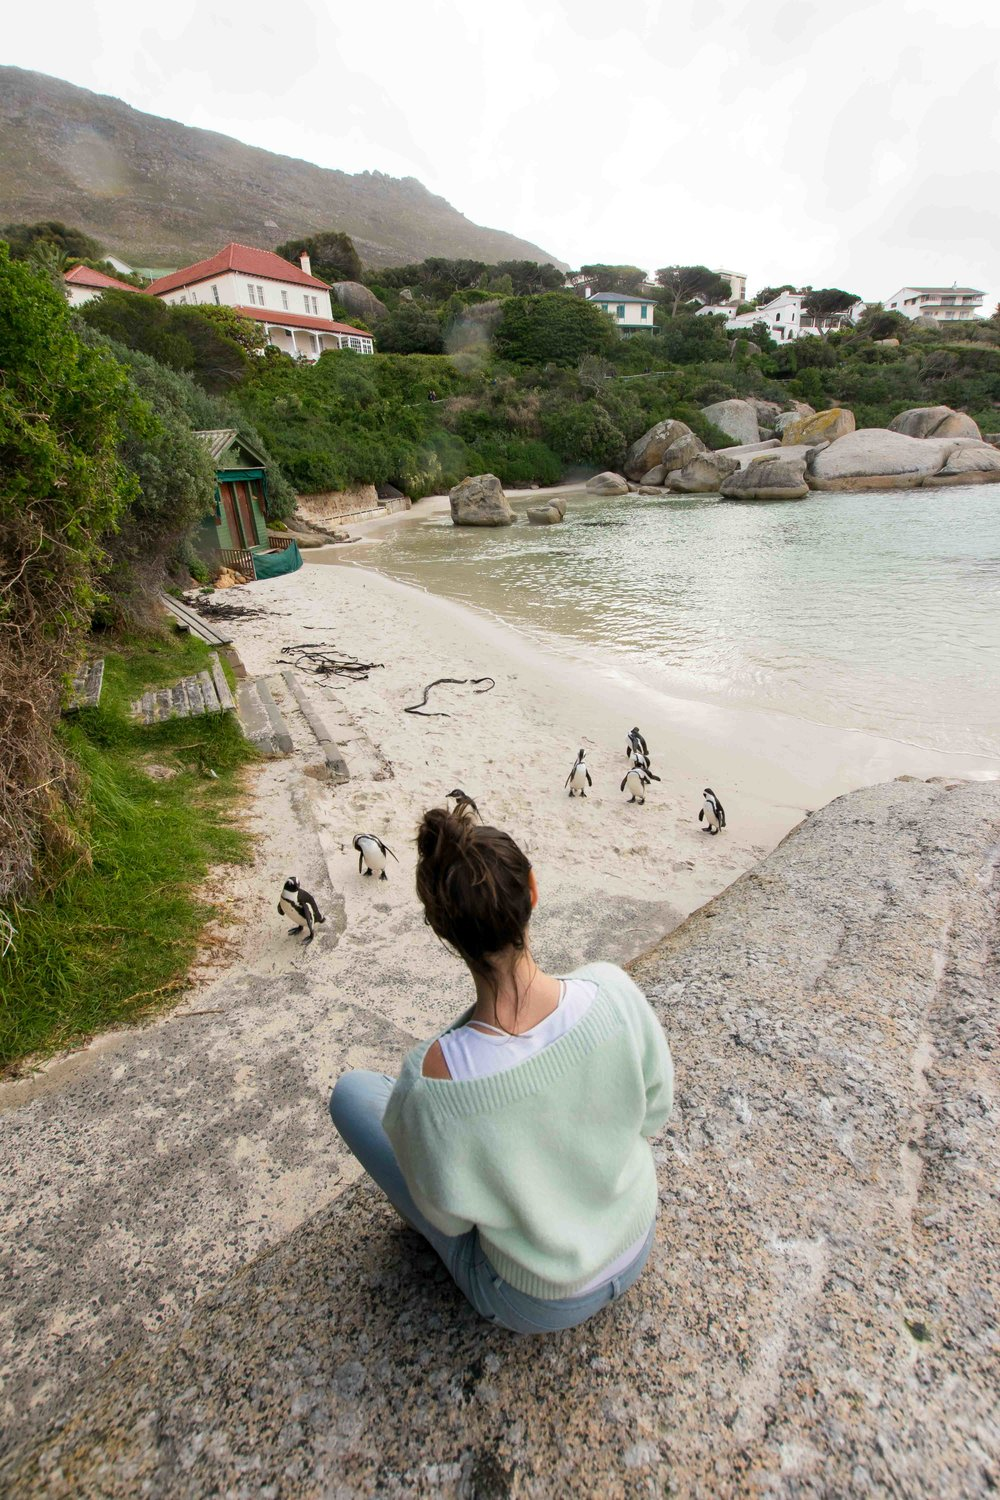 Penguins in South Africa